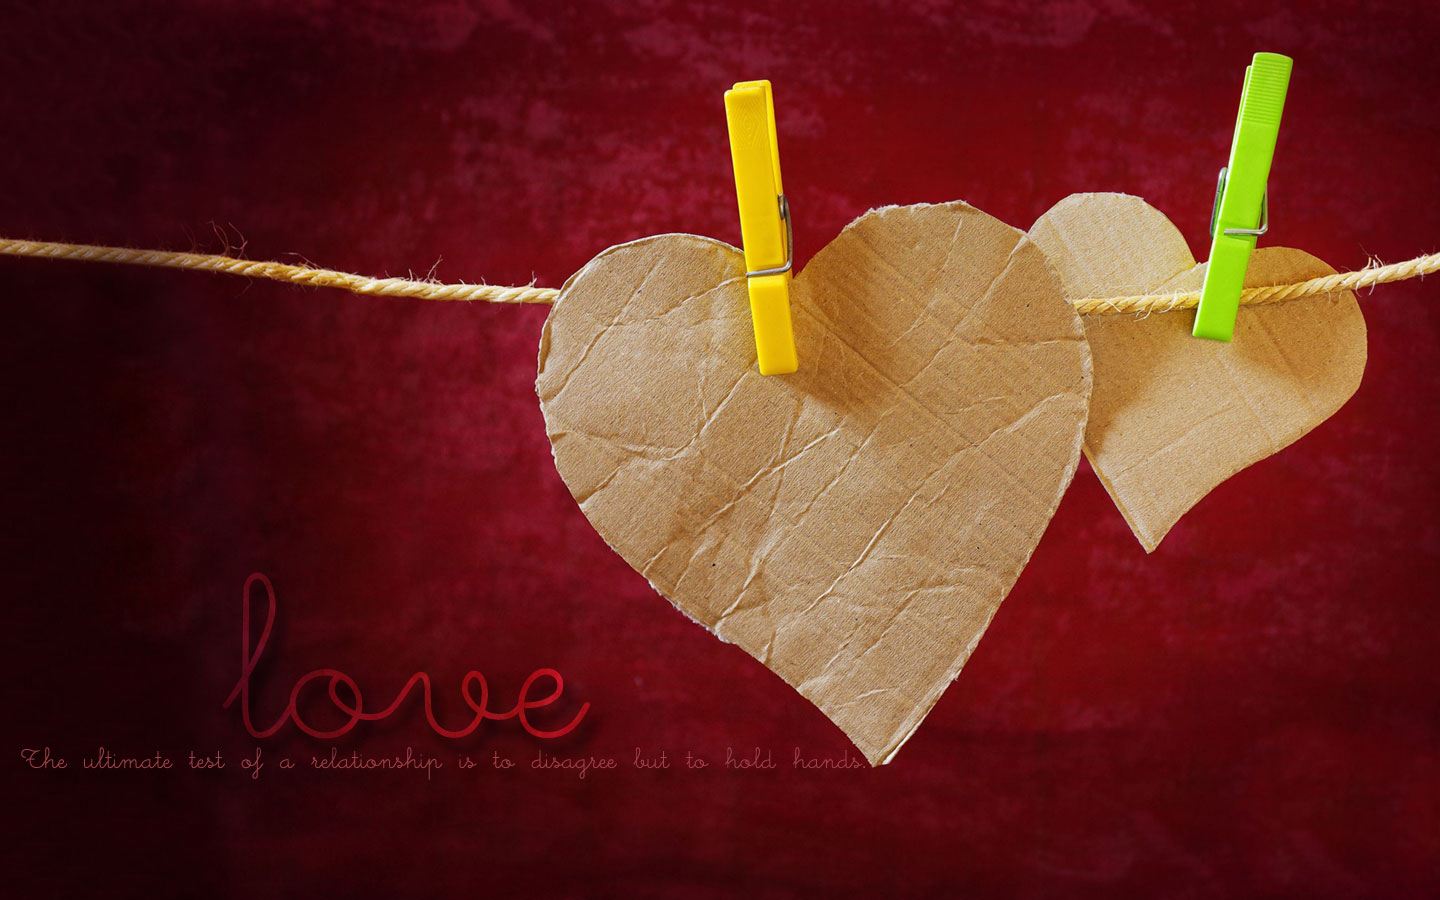 ... love 3d wallpapers love 3d vector images love beautiful wallpapers